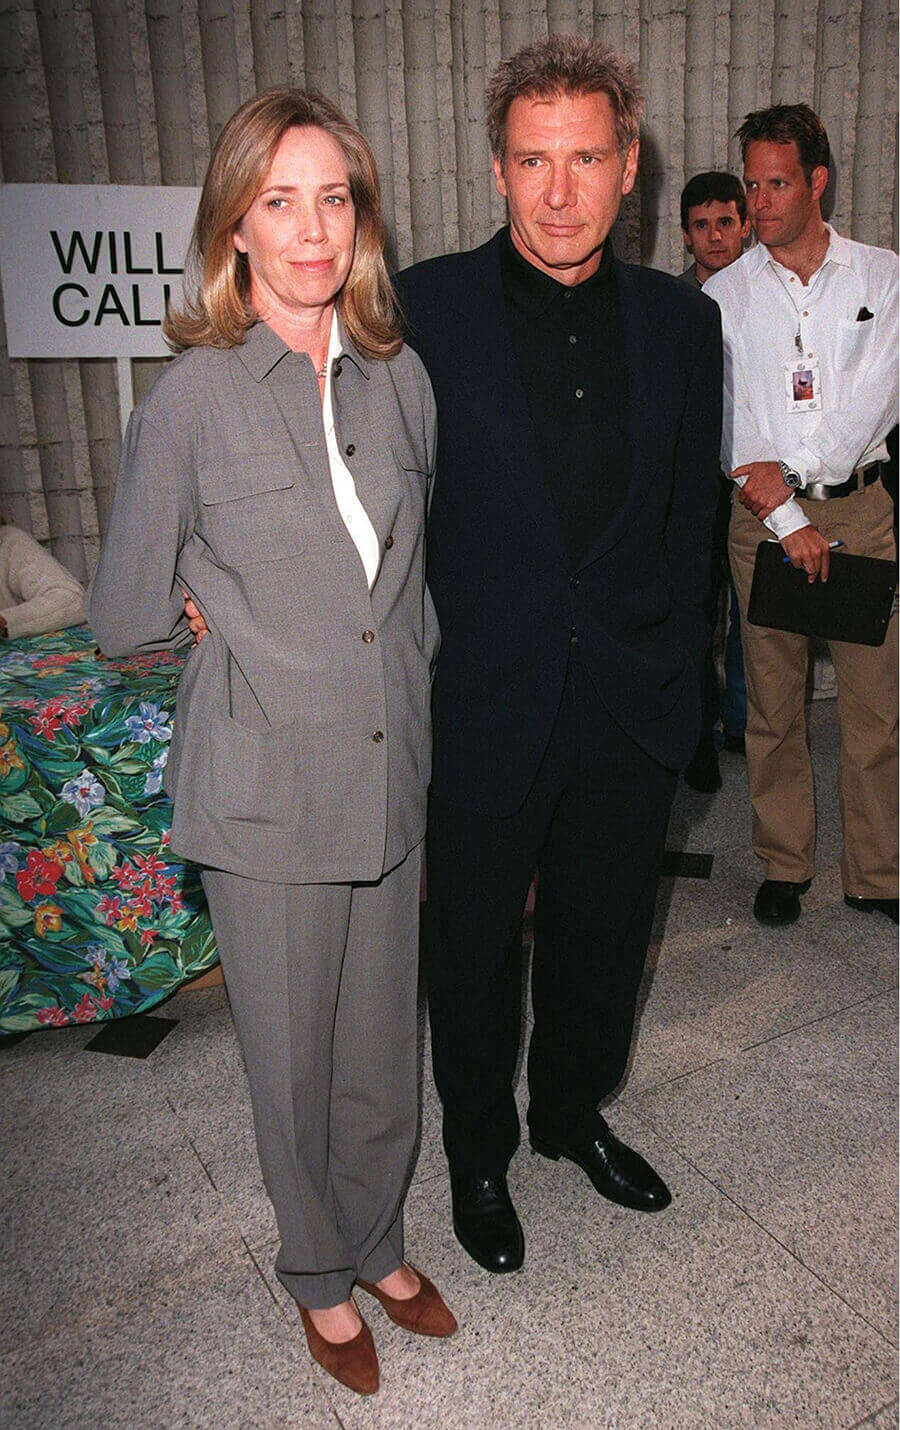 Melissa Mathison and Harrison Ford in 1998. Photo credit: Featureflash Photo Agency / Shutterstock.com